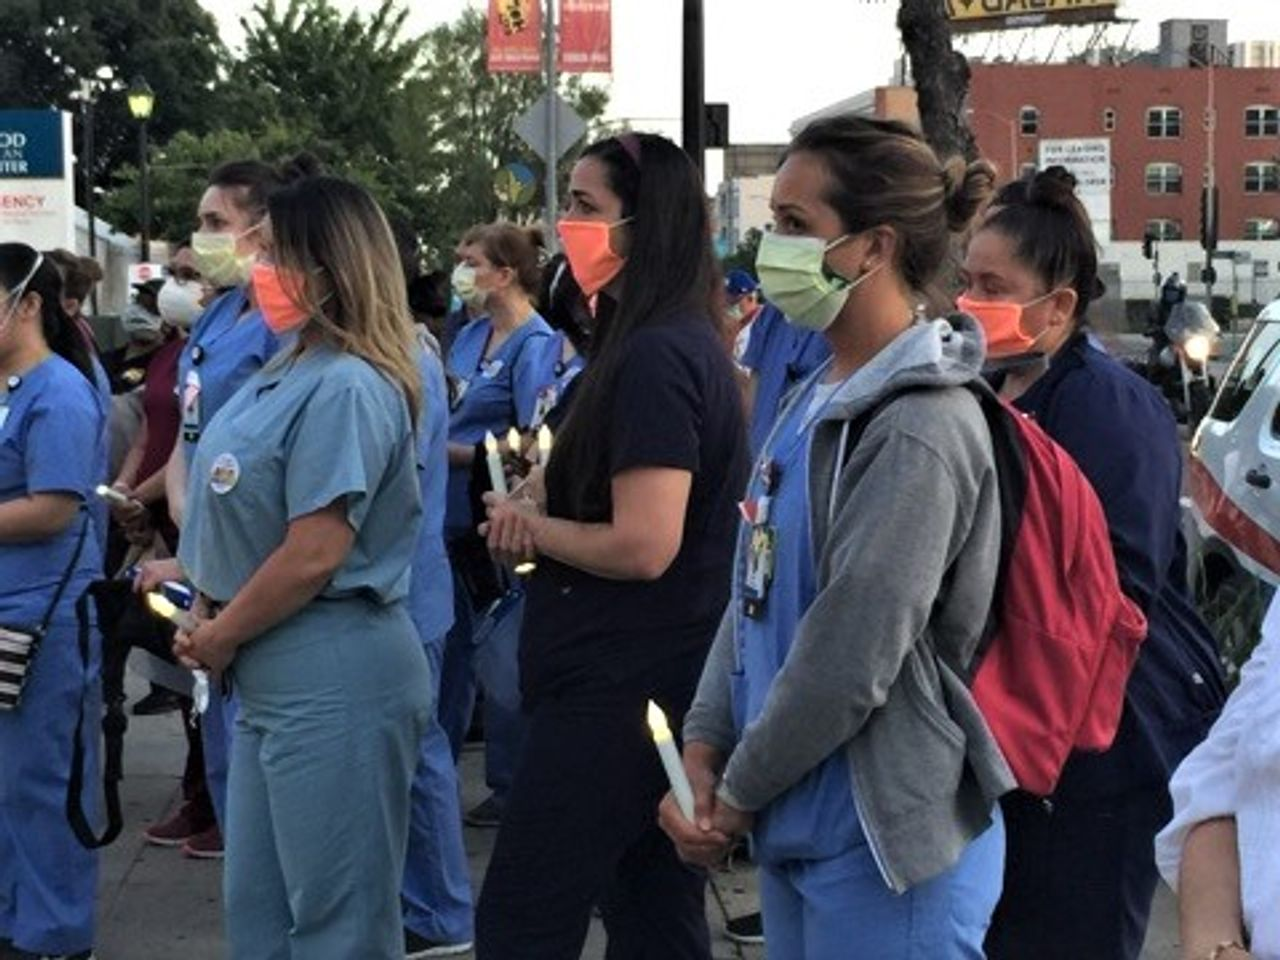 May 6 candlelight vigil for Celia Marcos, a nurse who died from COVID-19 at Hollywood Presbyterian hospital (Photo credit: Wally Skalig, LA Times)